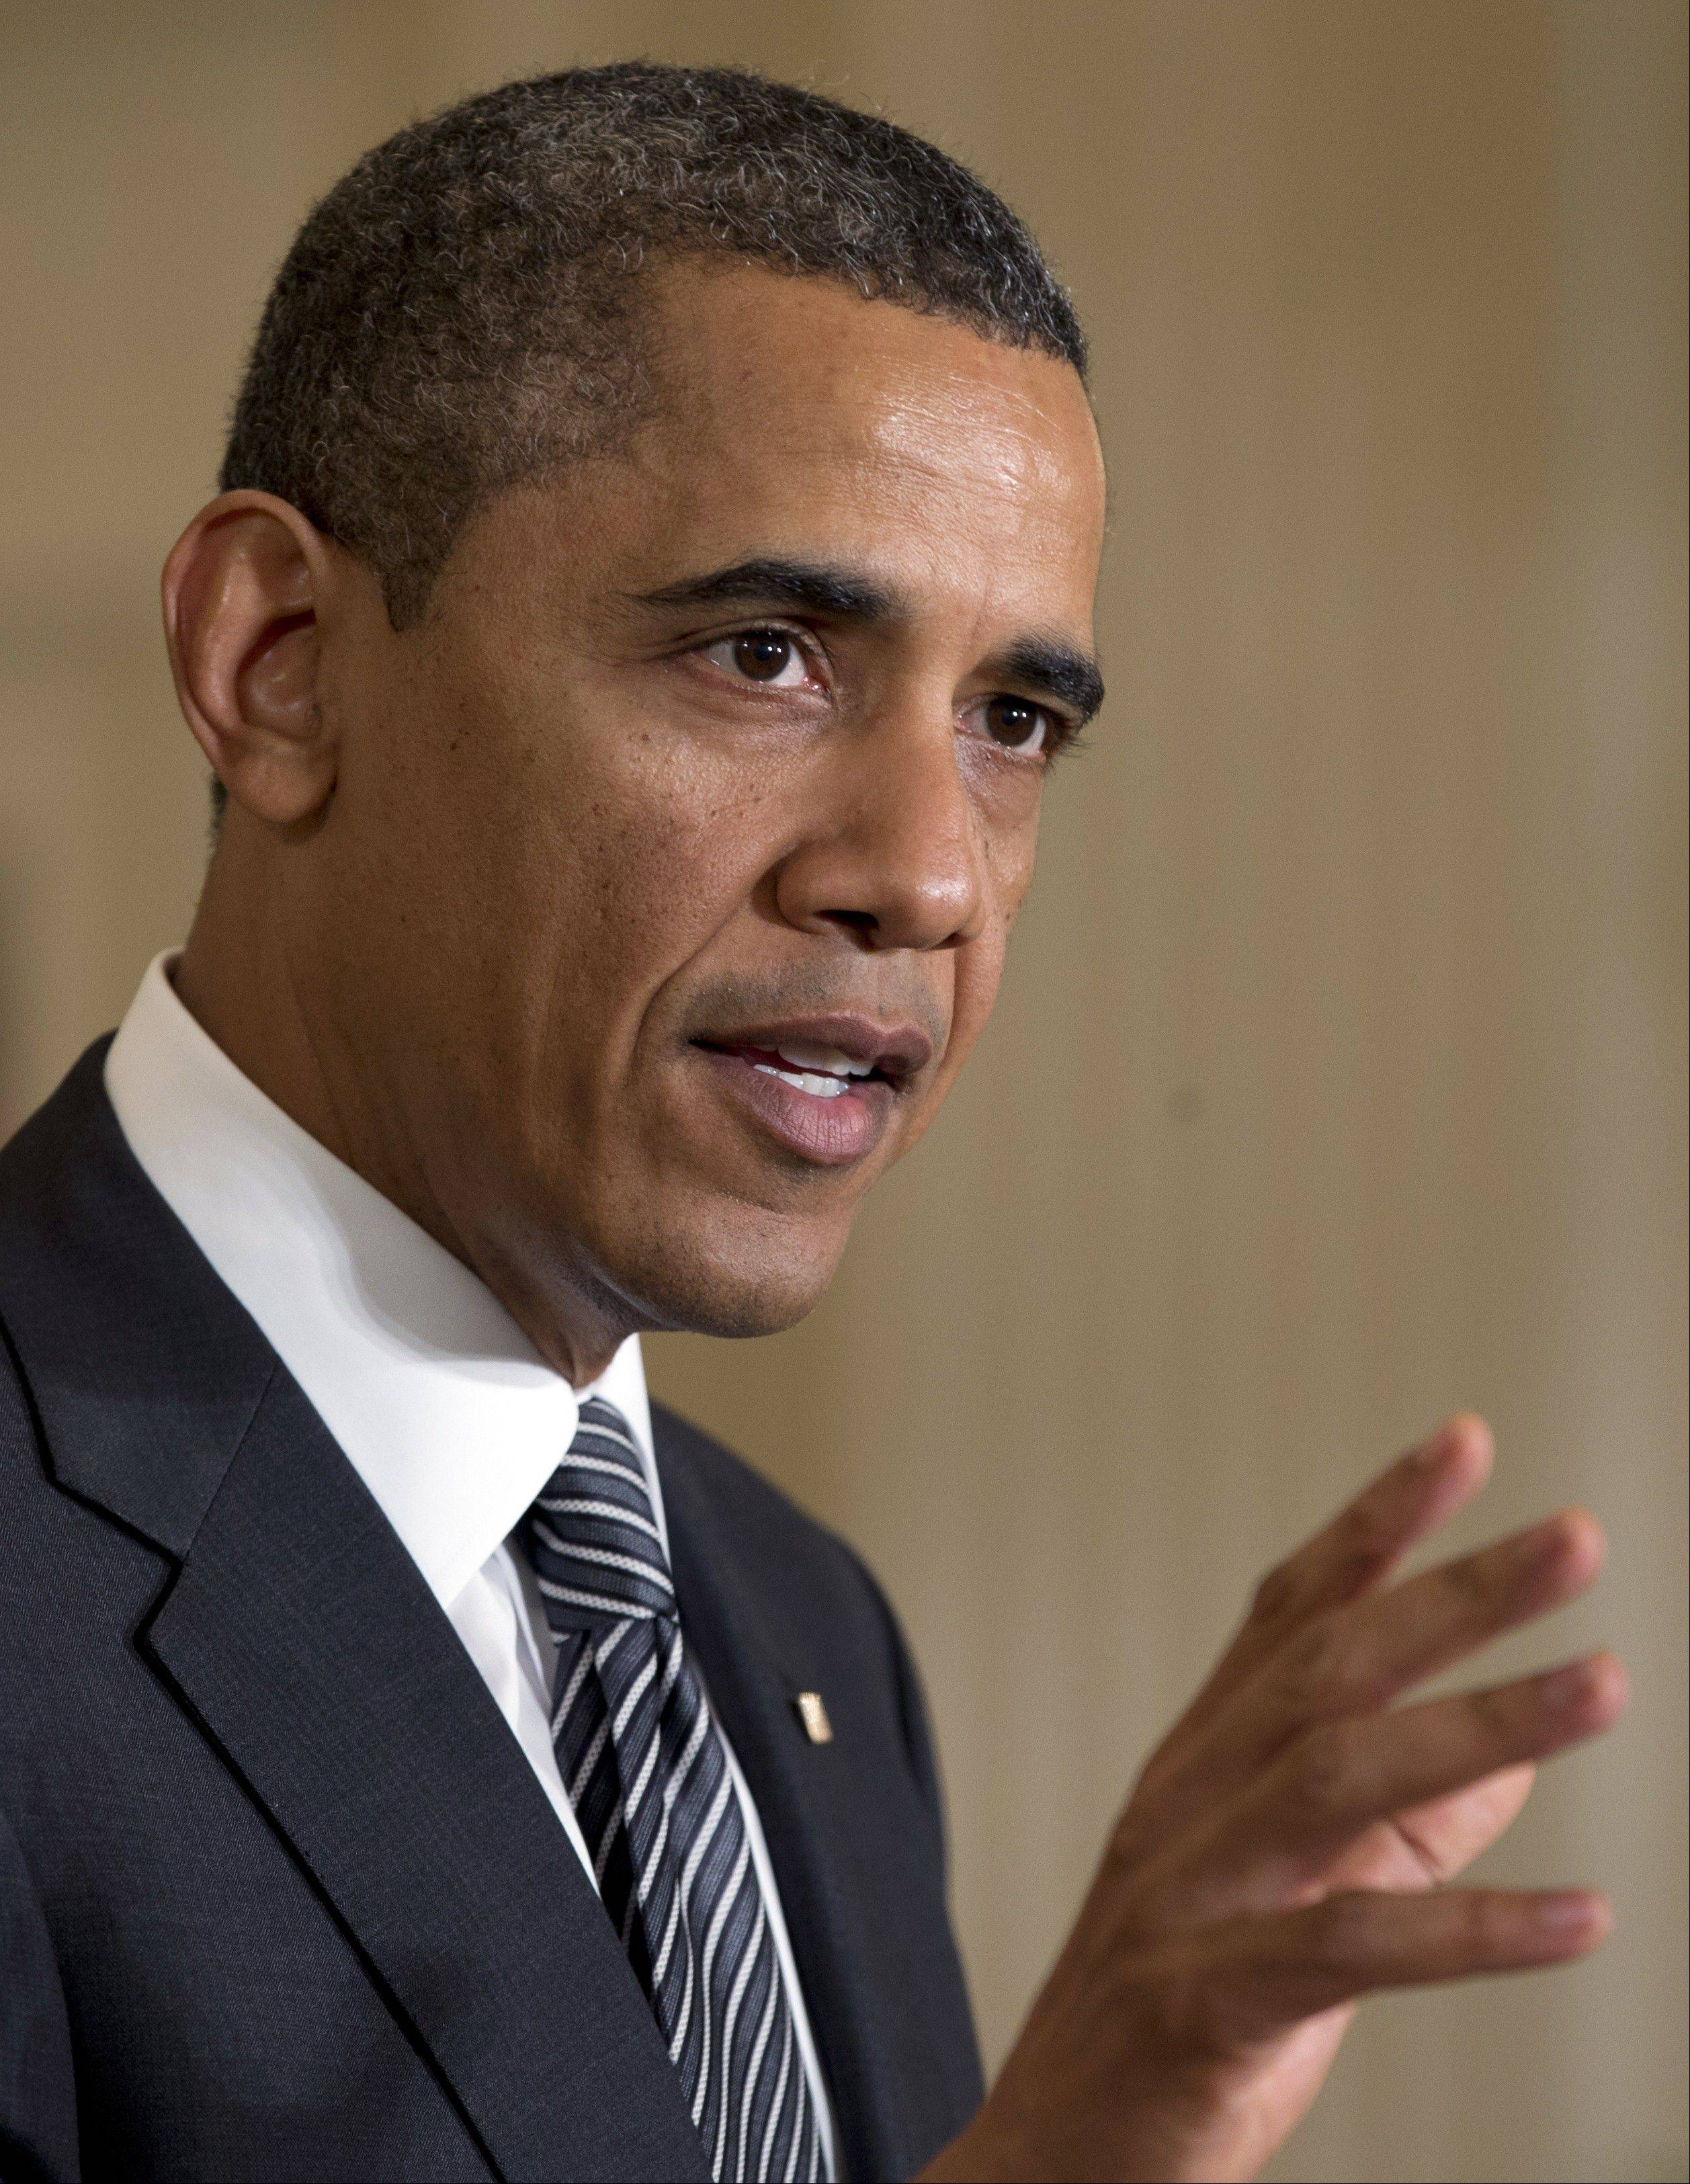 President Barack Obama caused some sports controversy when he talked about concussions and football.